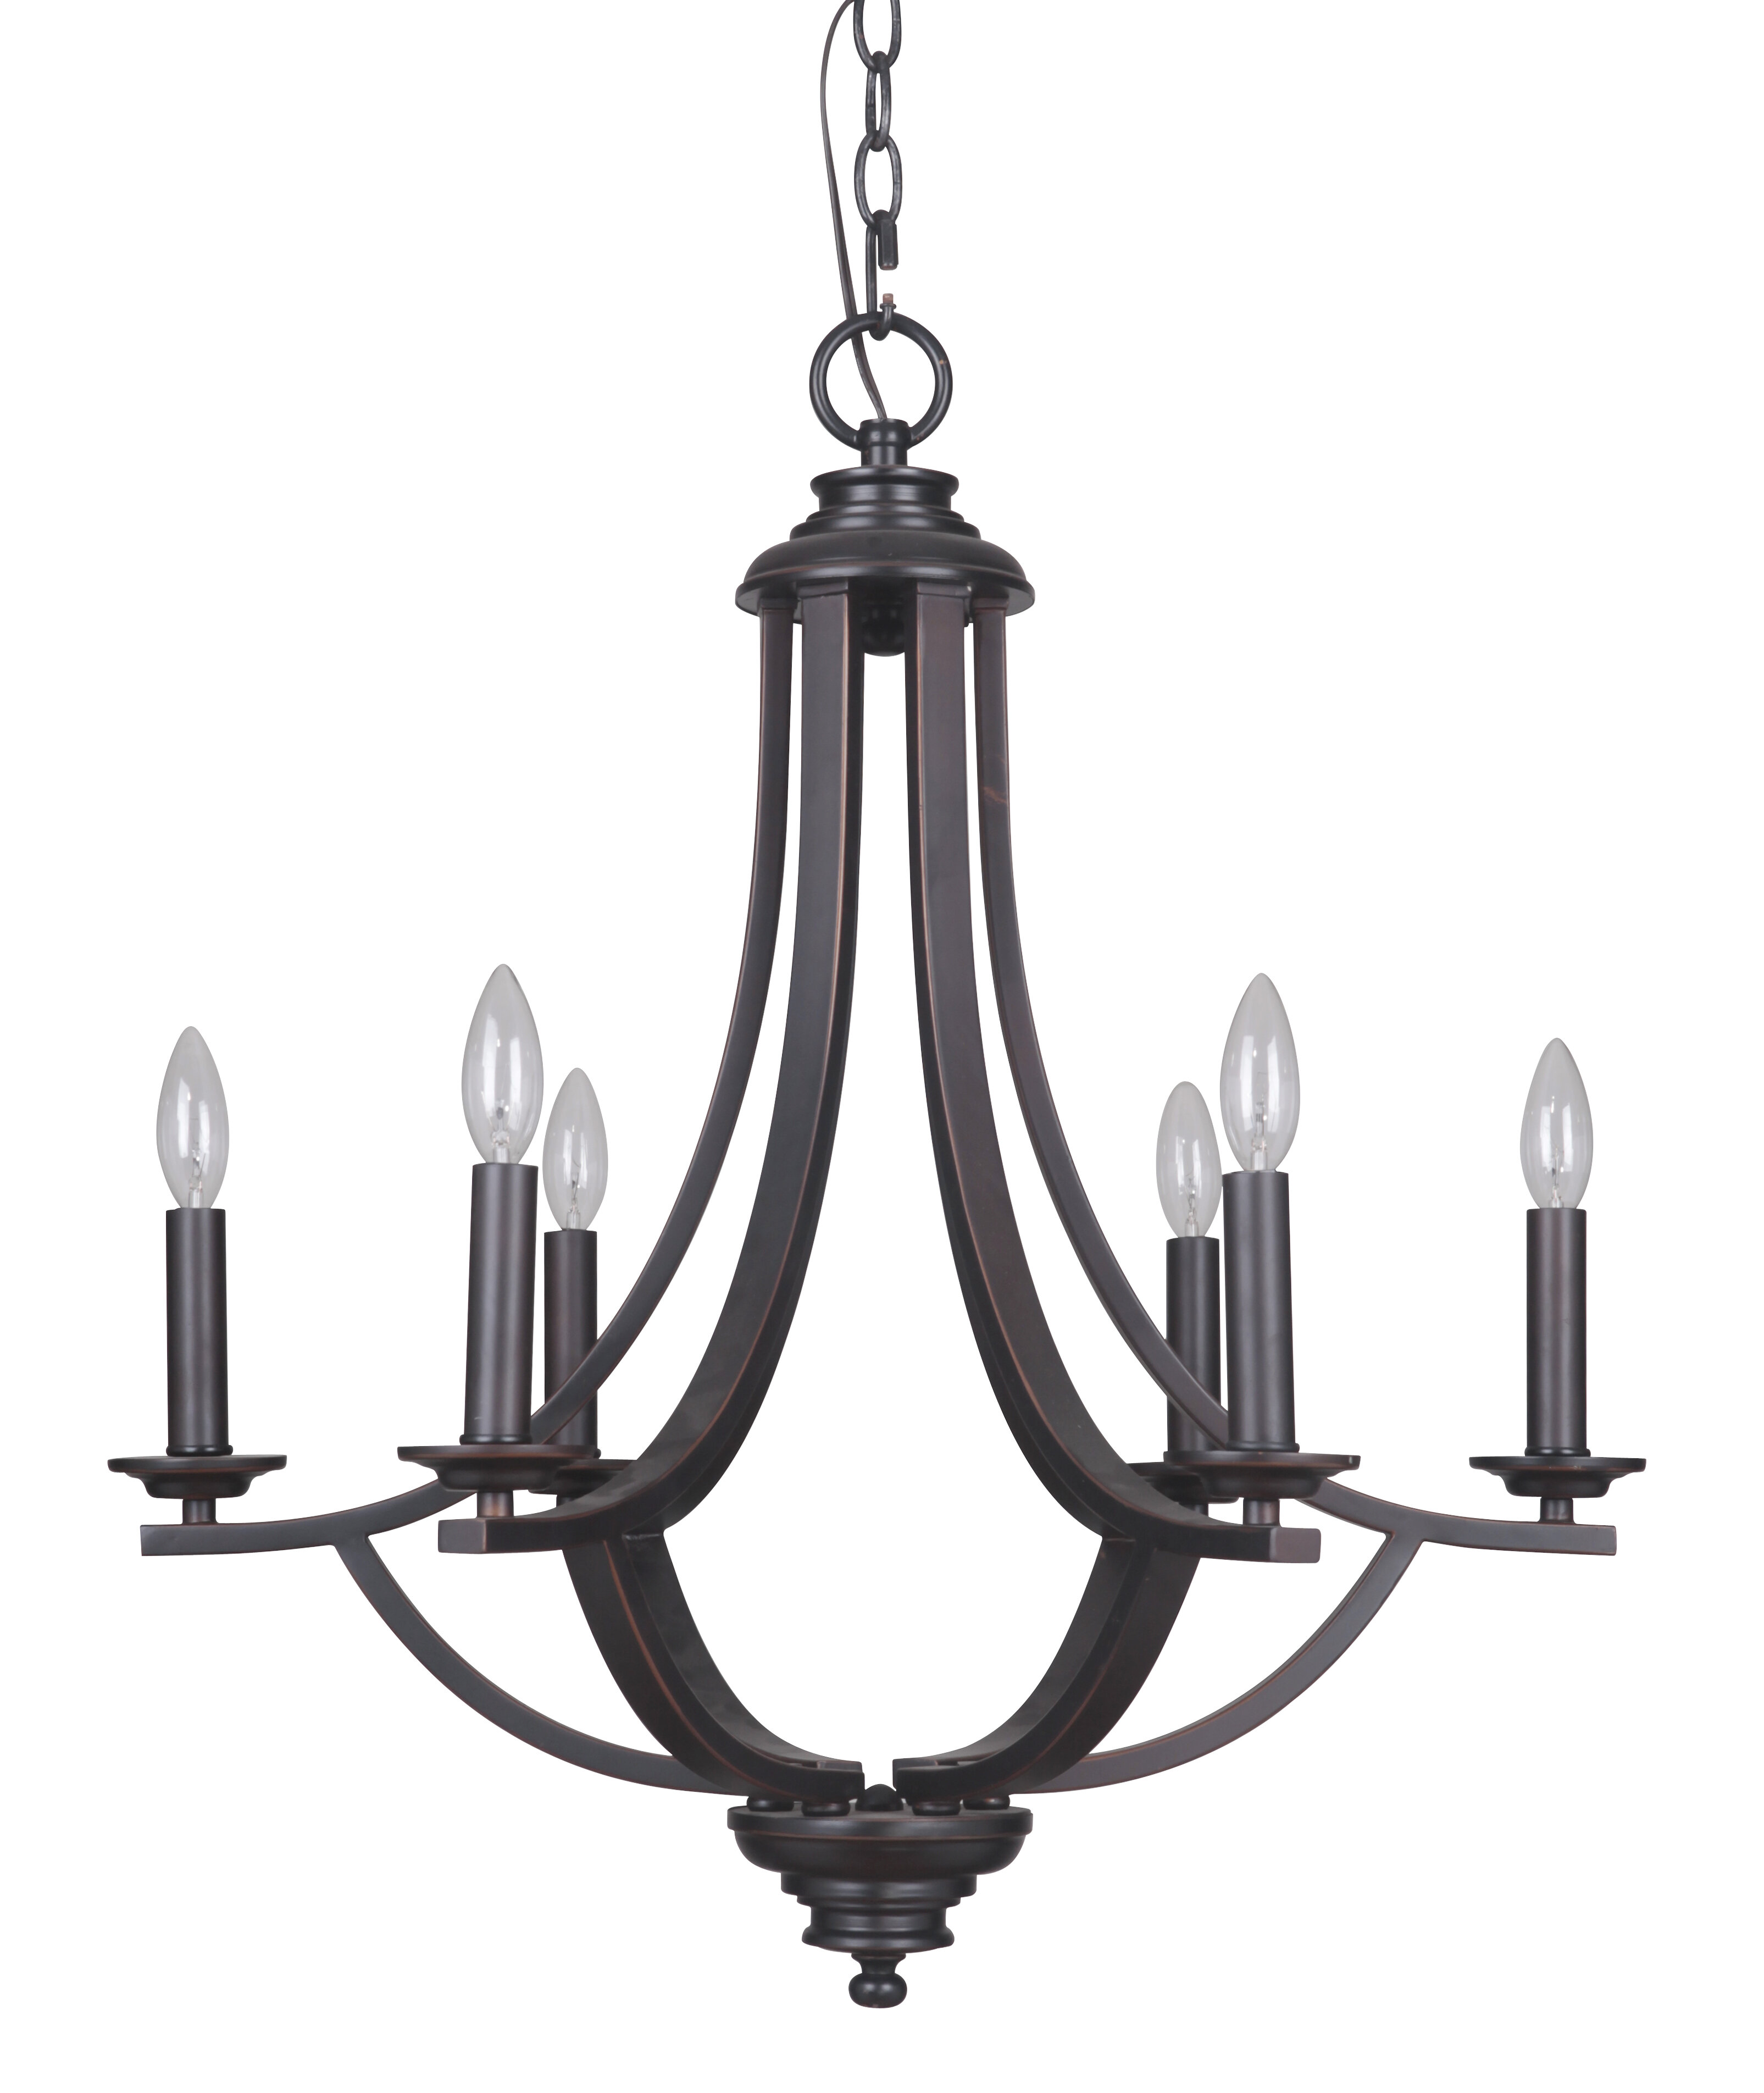 MarianaHome Dapper 6 Light Candle Style Chandelier & Reviews